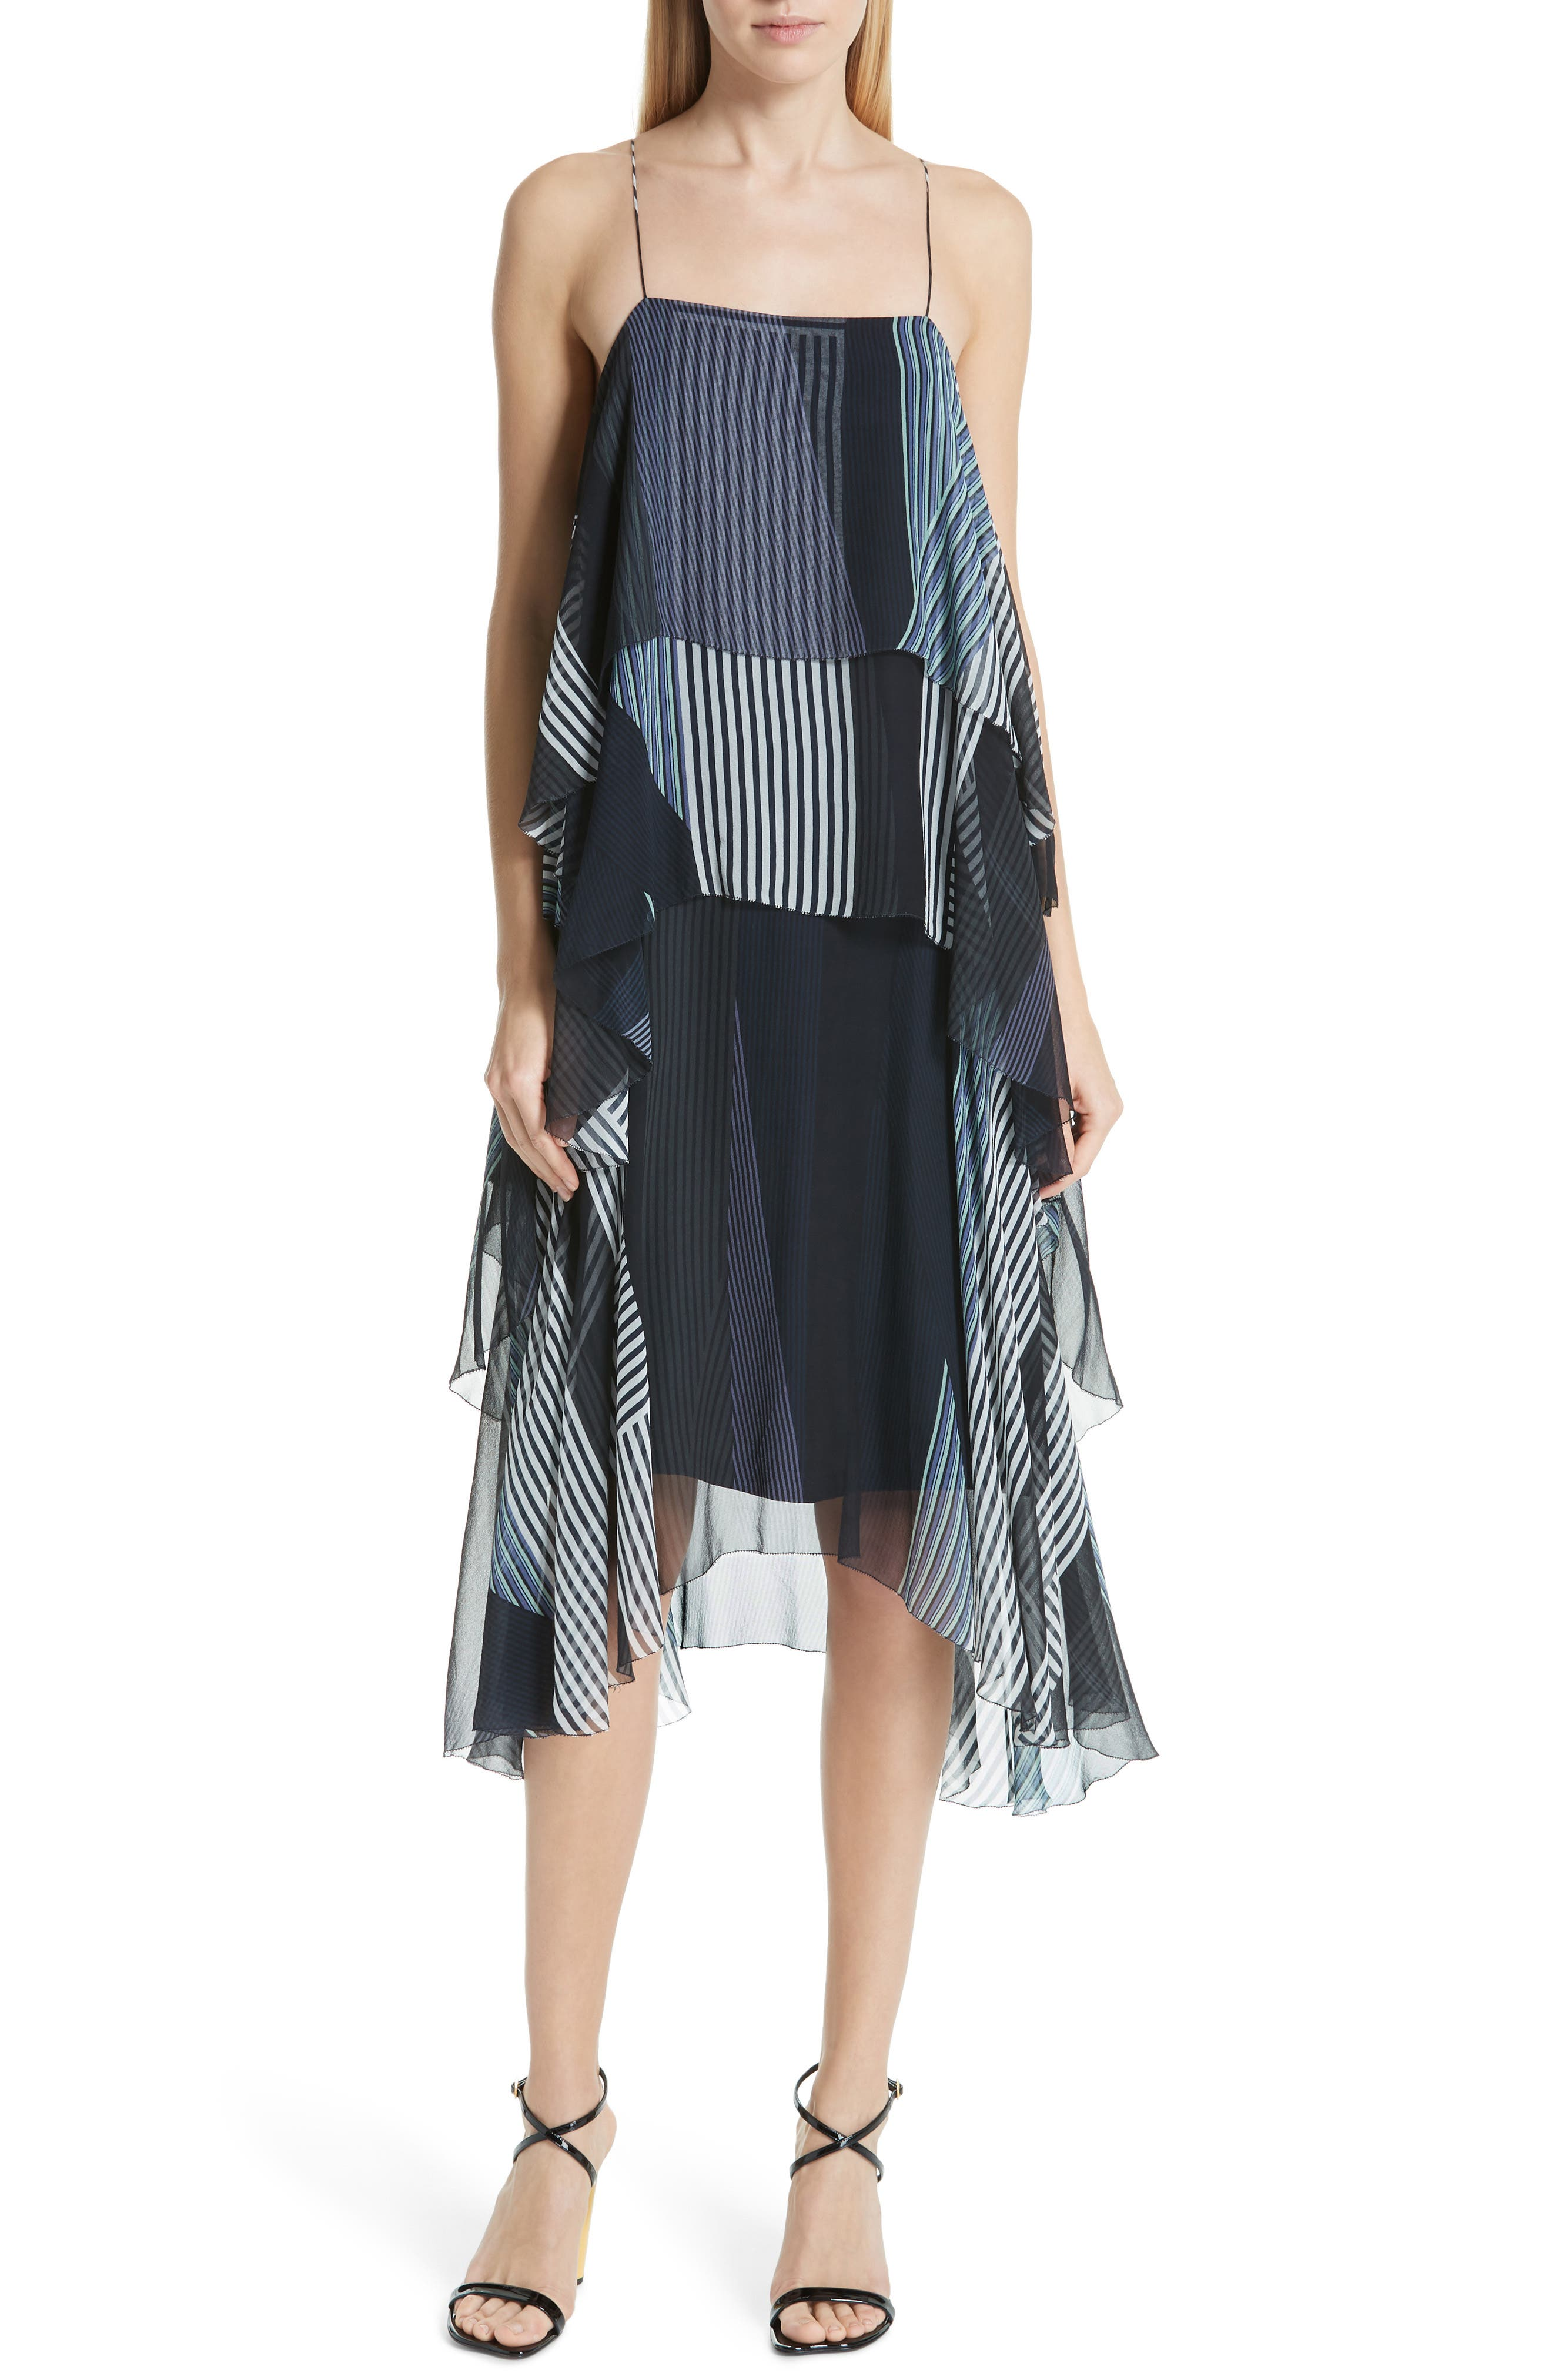 JASON WU, Collage Stripe Silk Tiered Dress, Main thumbnail 1, color, DARK NAVY MULTI